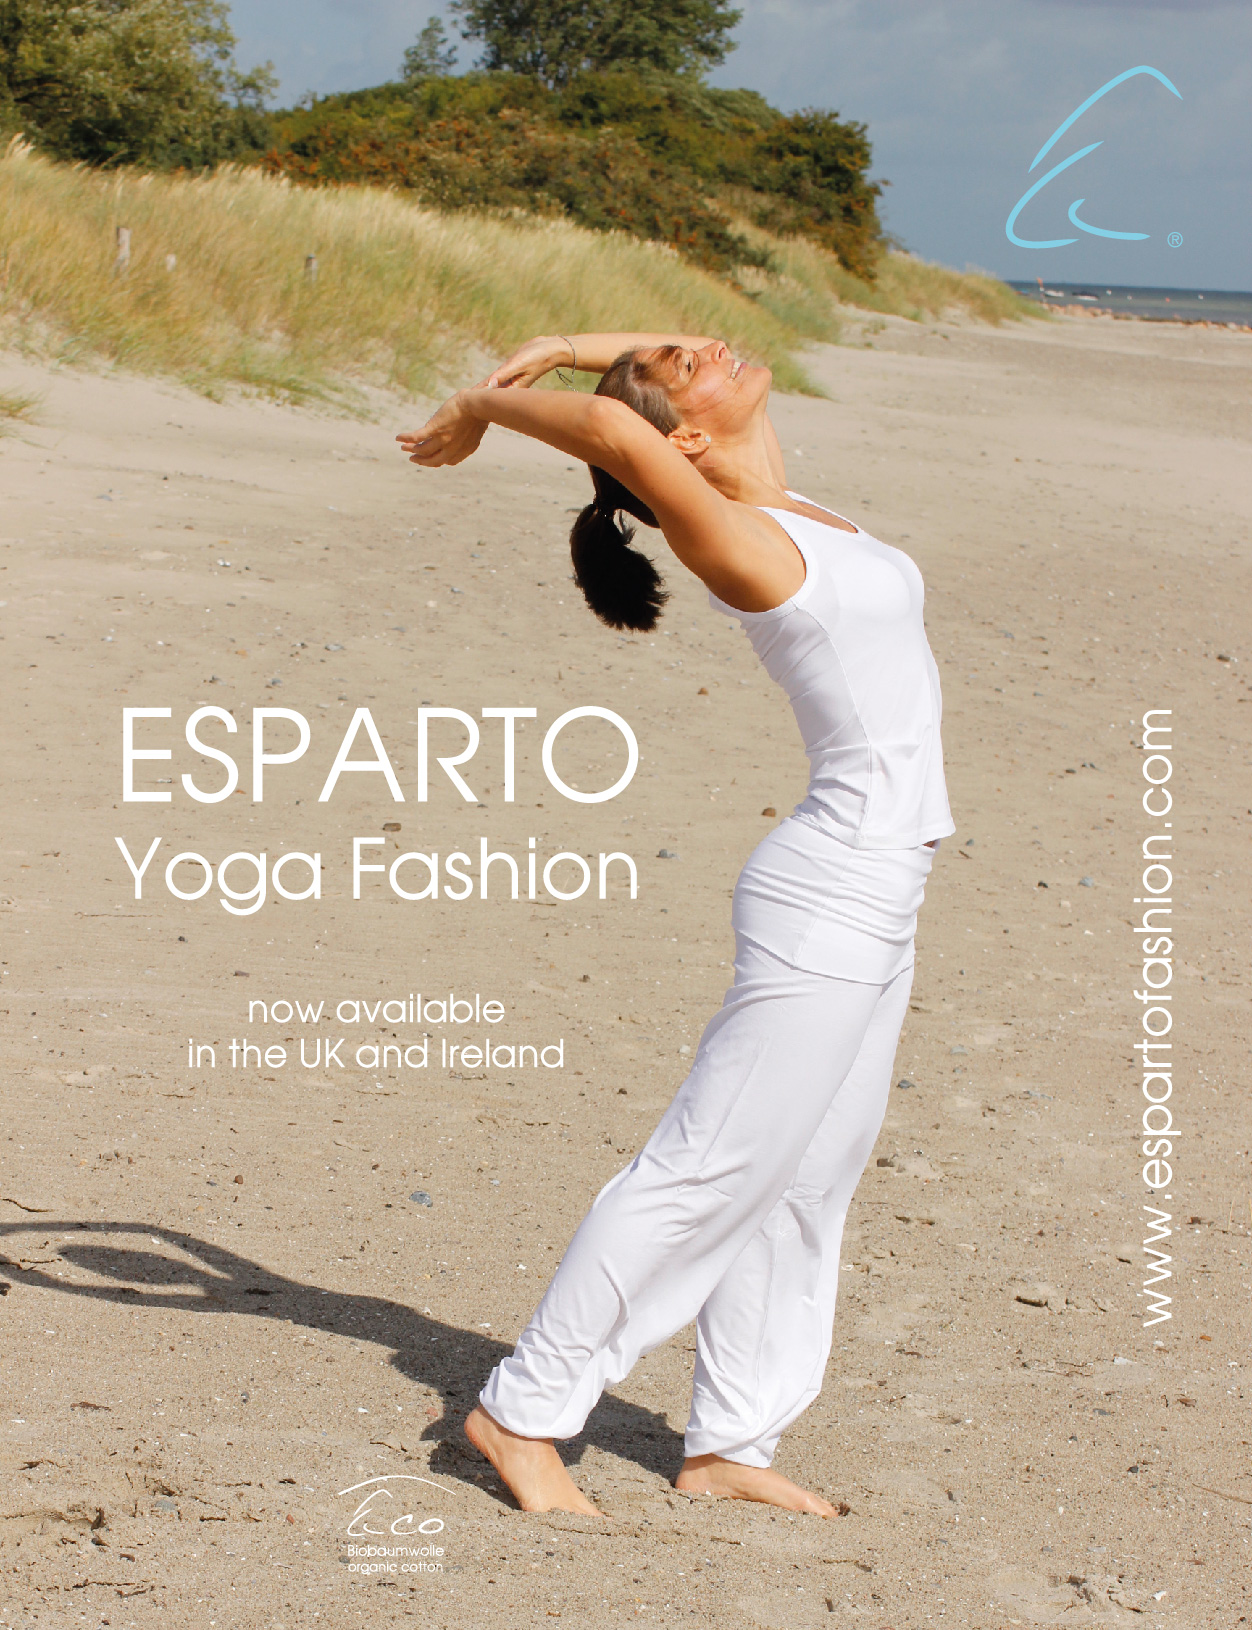 ESPARTO Yoga Fashion